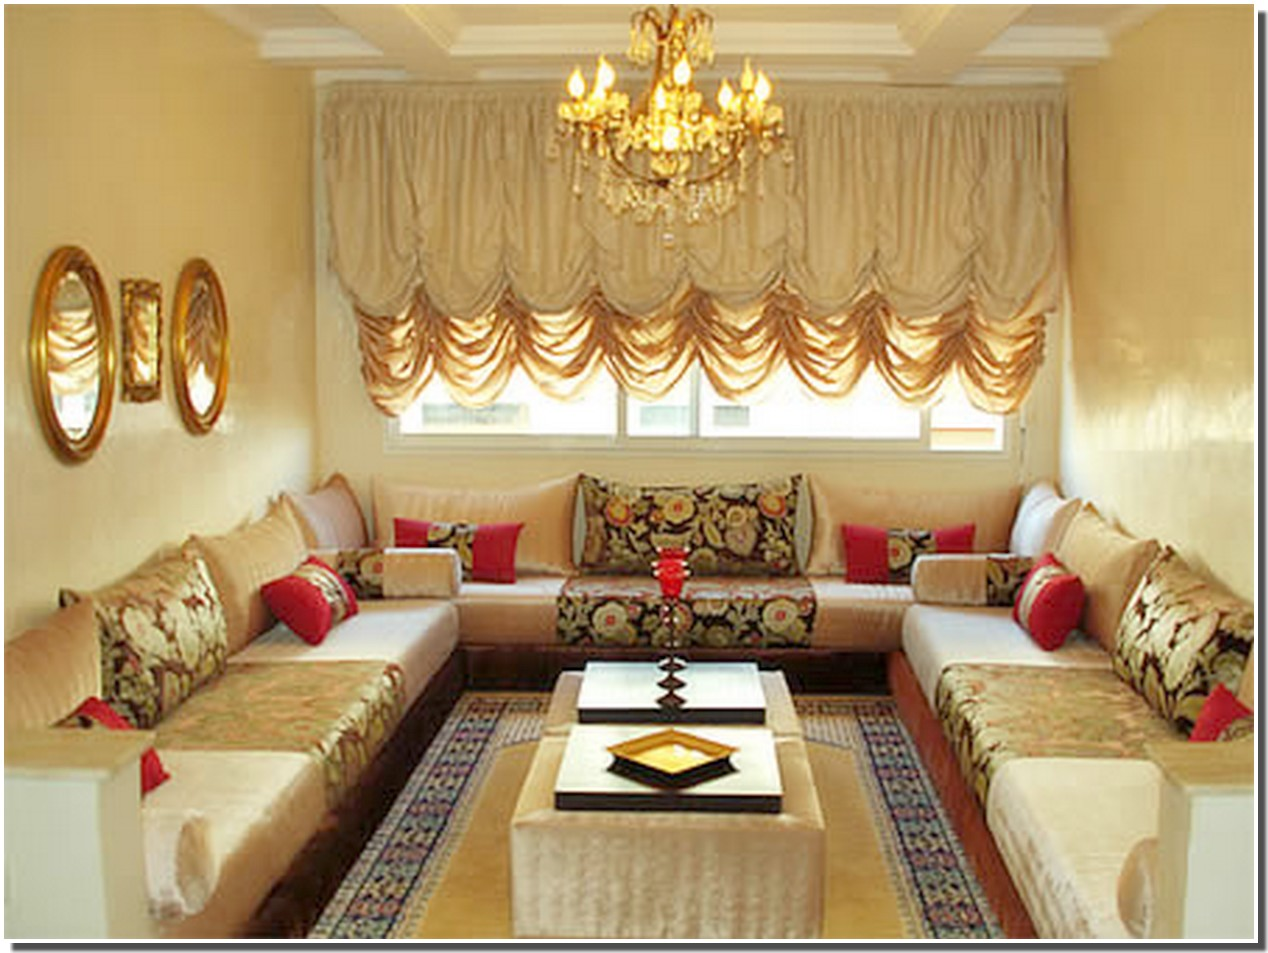 Nassima Home: Salon turc